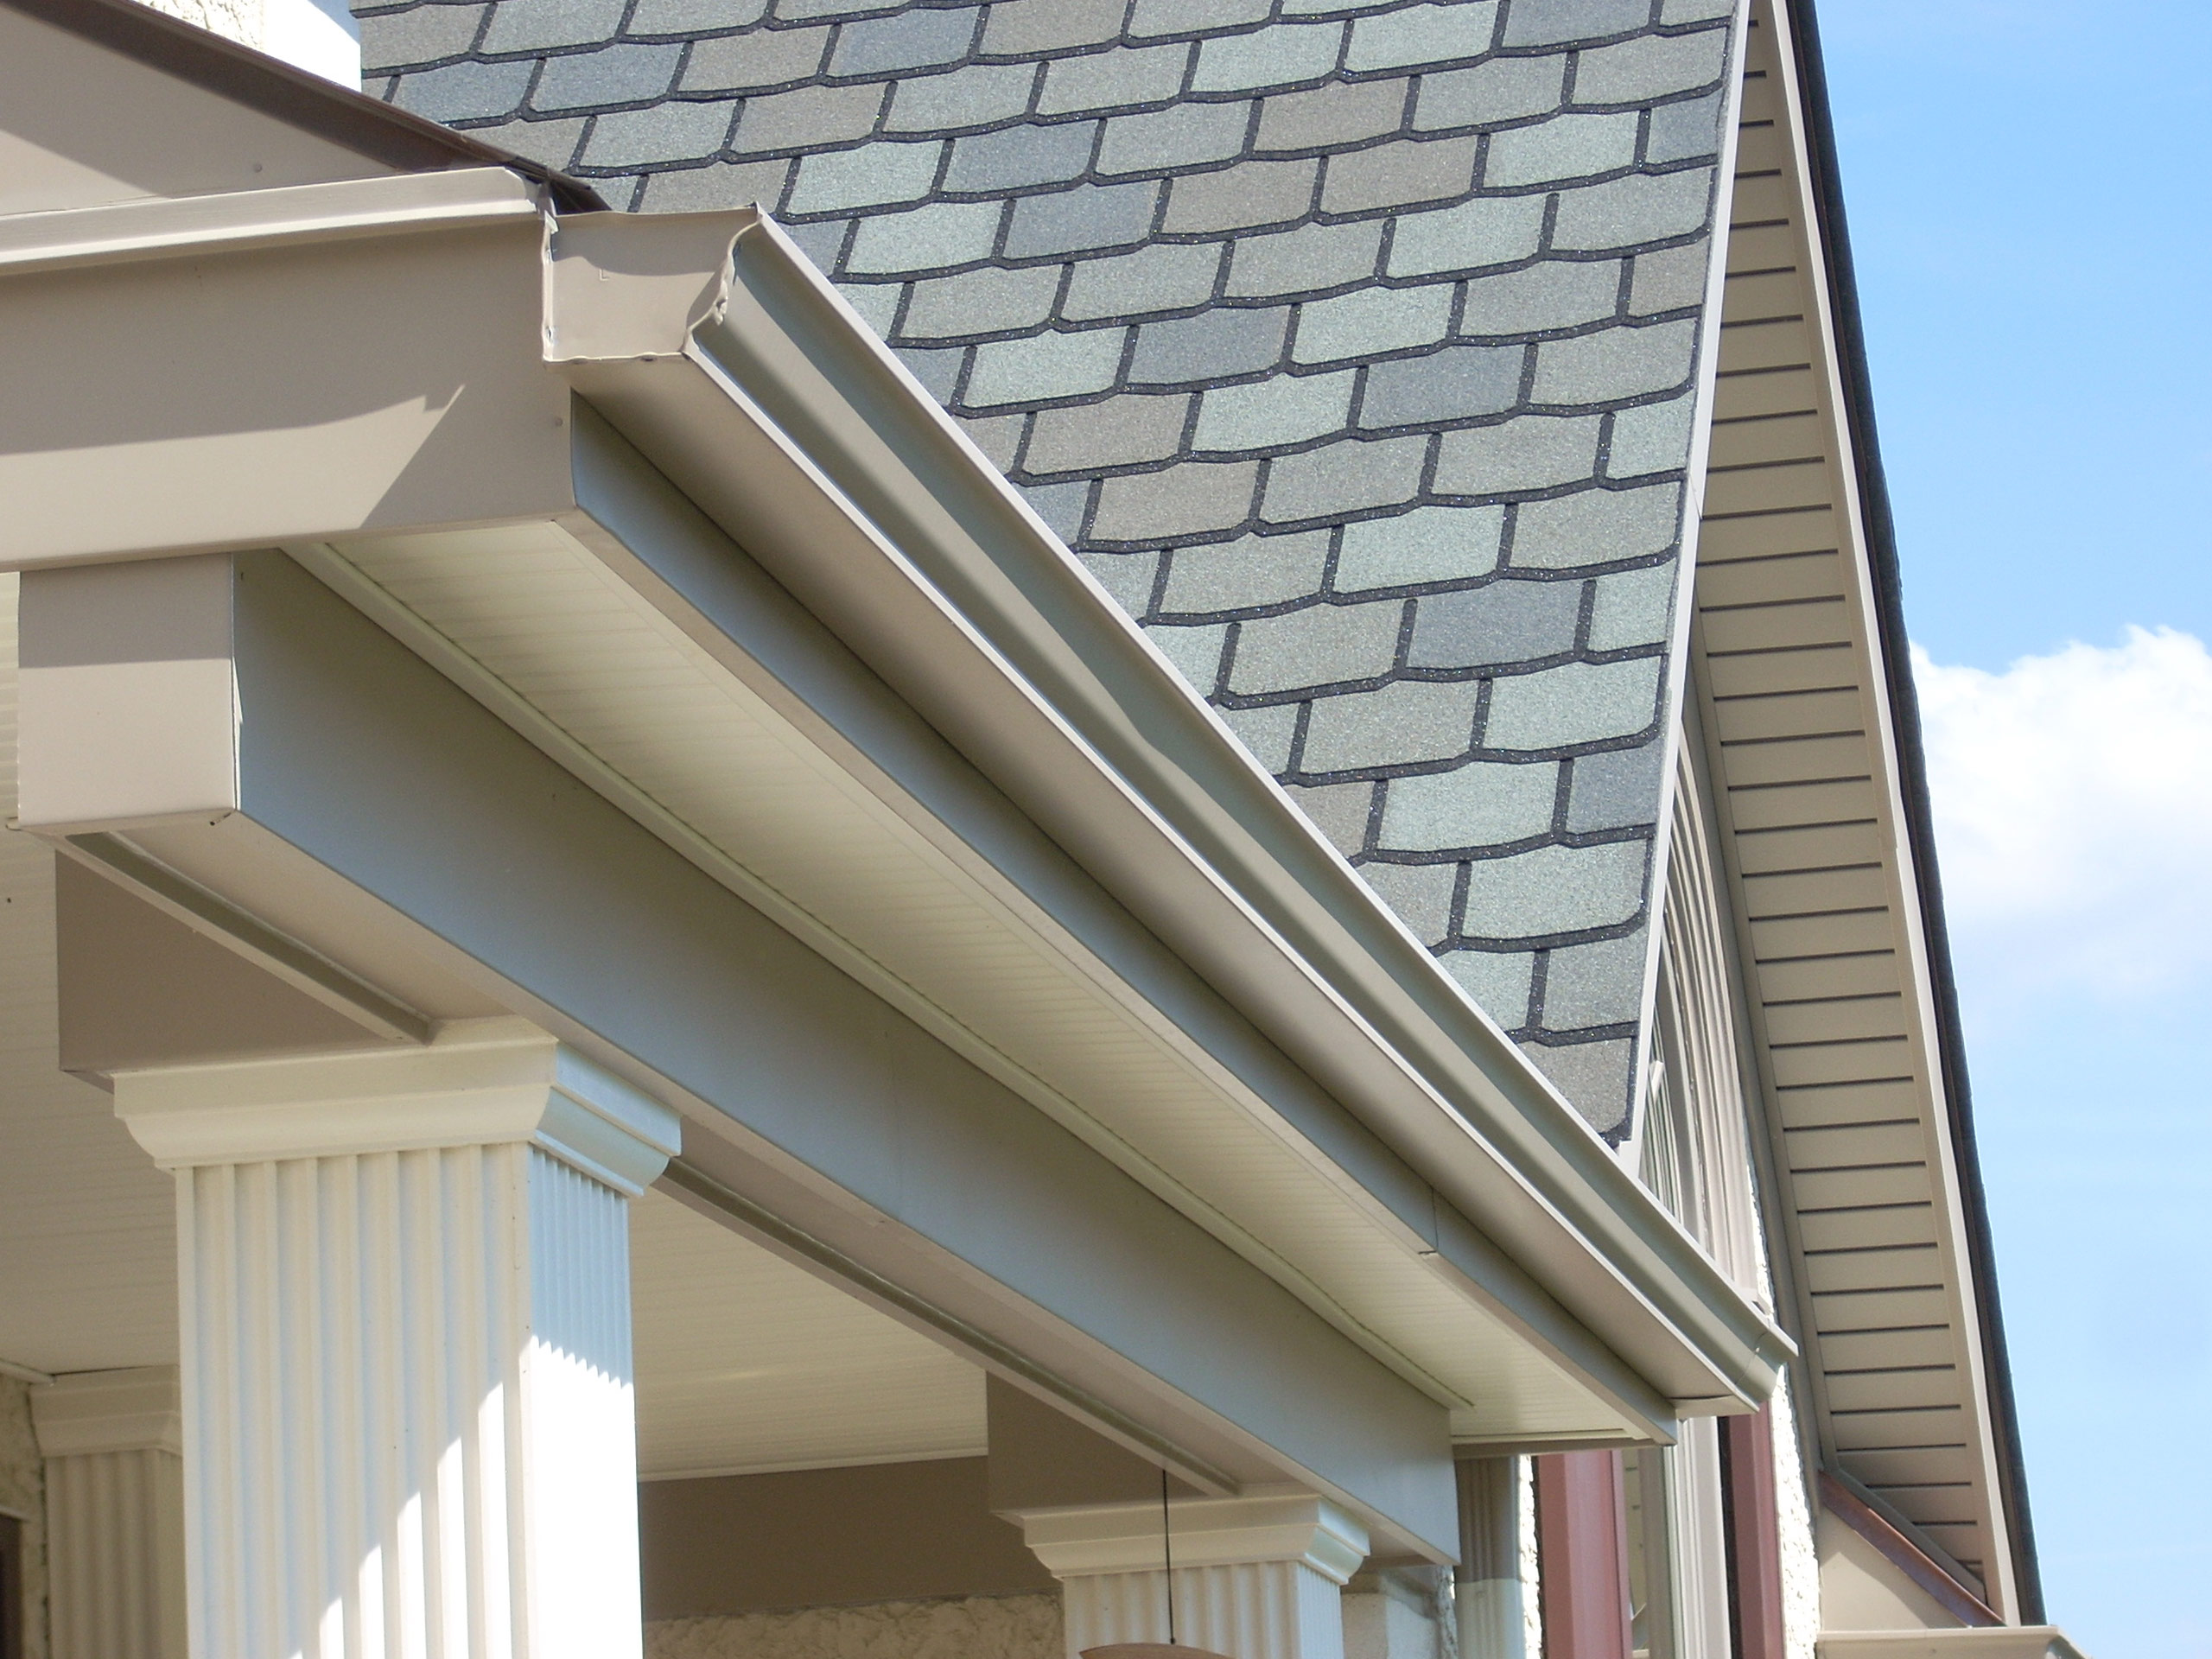 Gutters Commercial and Residential Services Russell Roofing And Exteriors